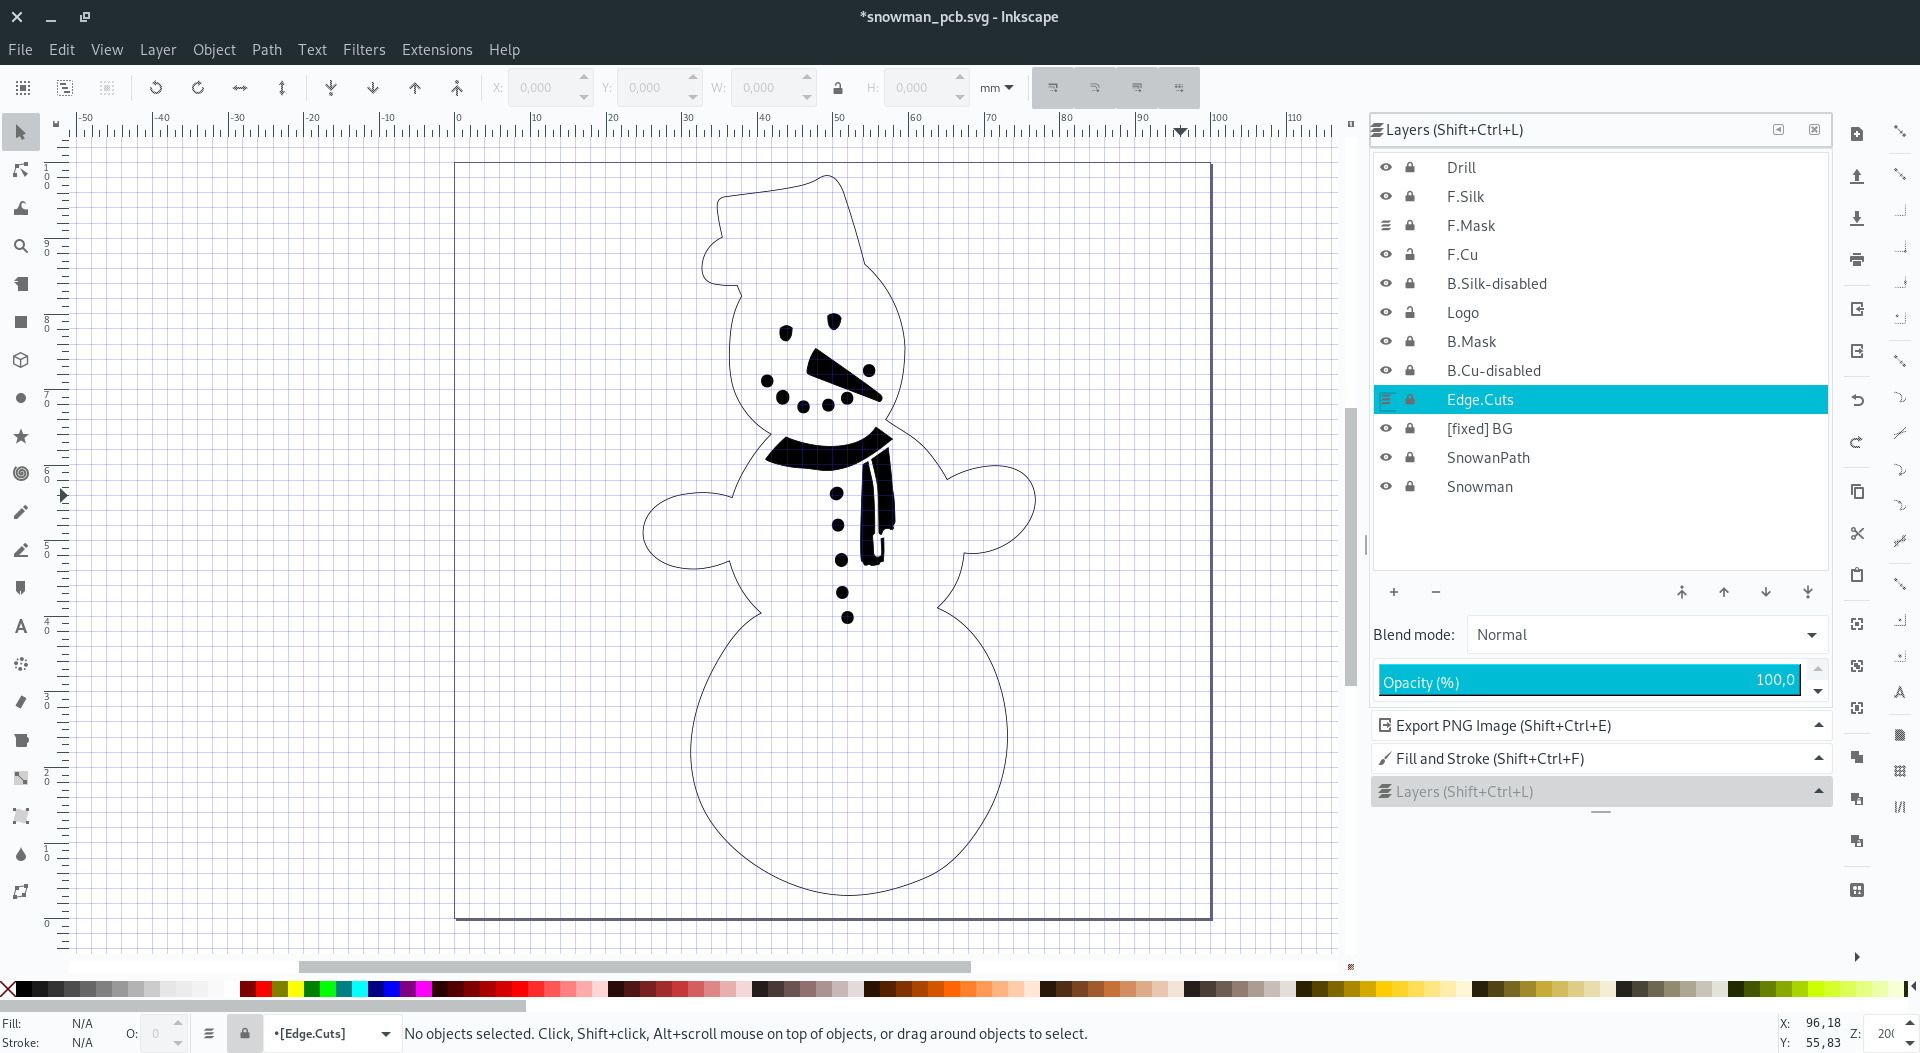 Snowman PCB design in Inkscape - only F.Mask and Edge.Cuts